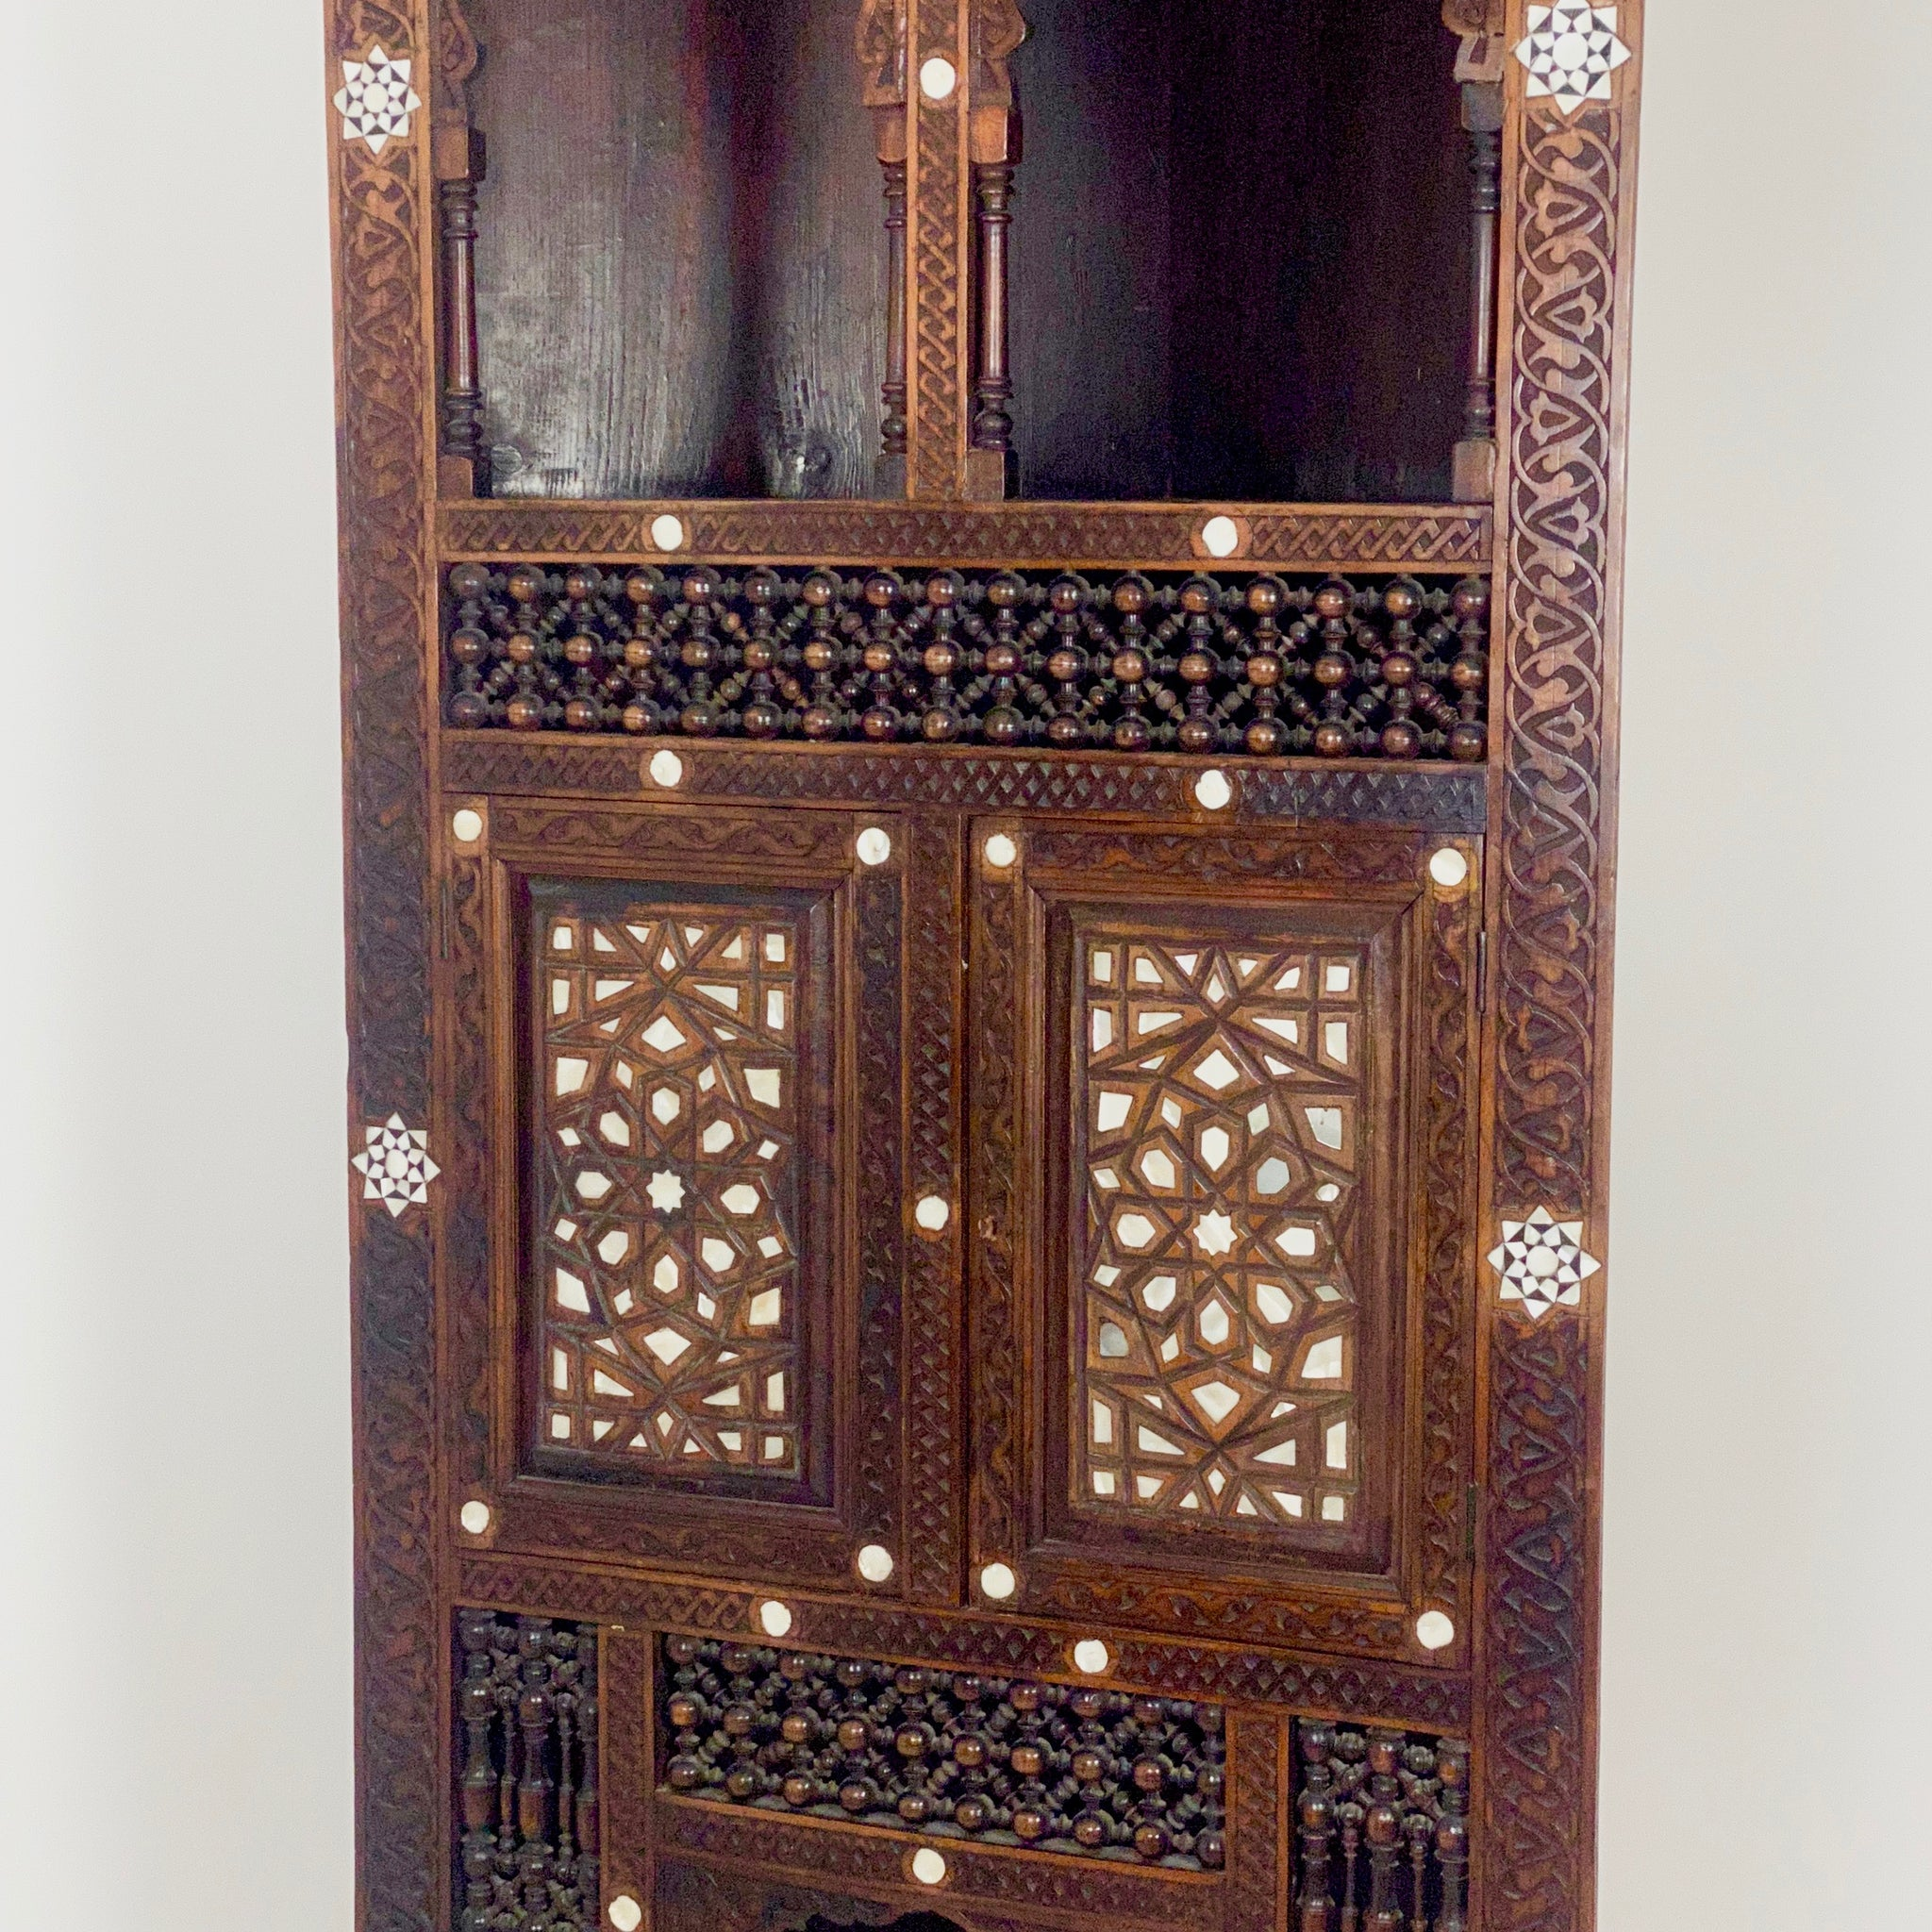 A late 19th century Syrian corner cupboard.